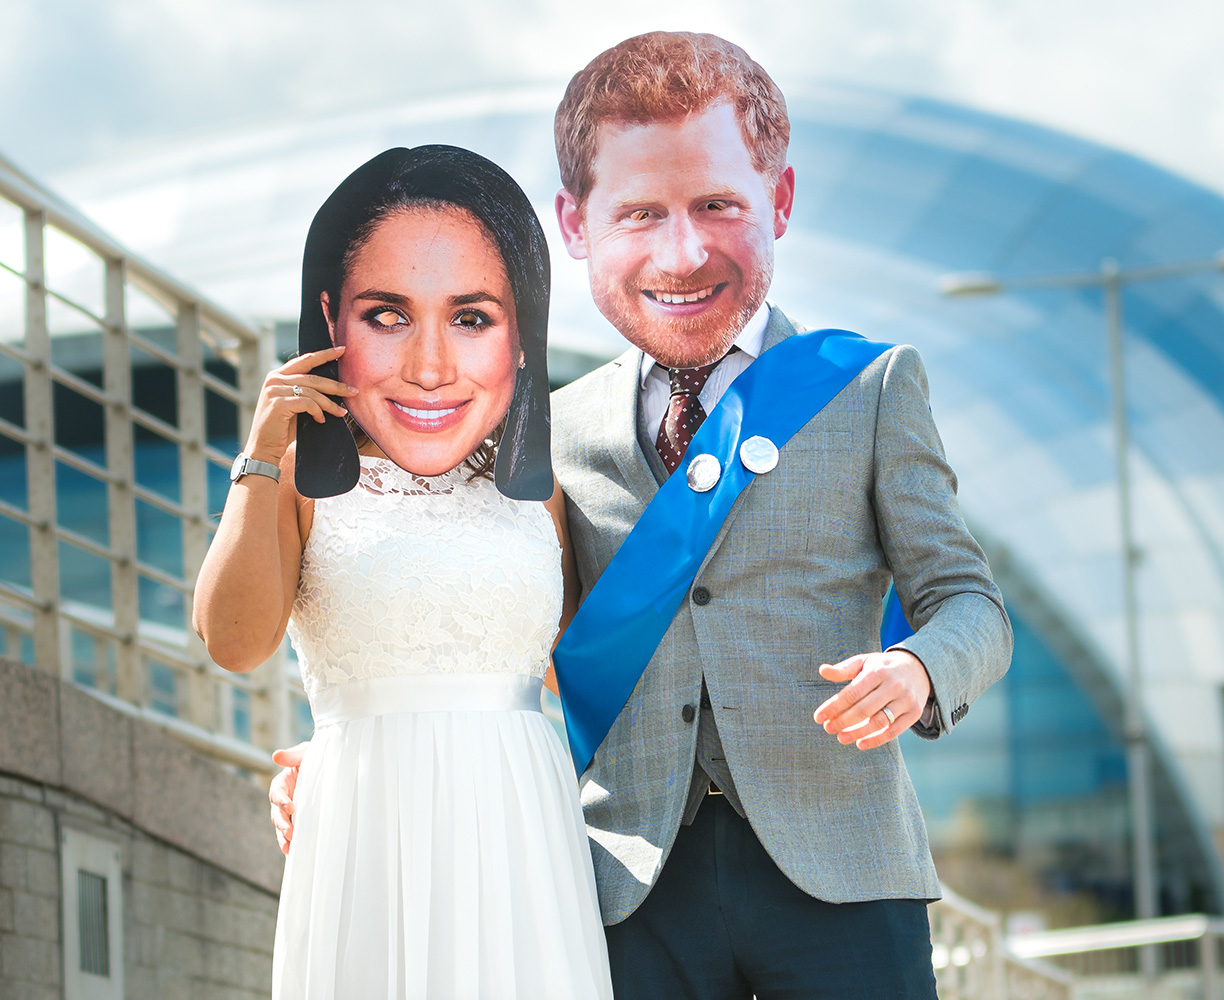 Meghan Markle and Prince Harry in front of The Sage in Newcastle